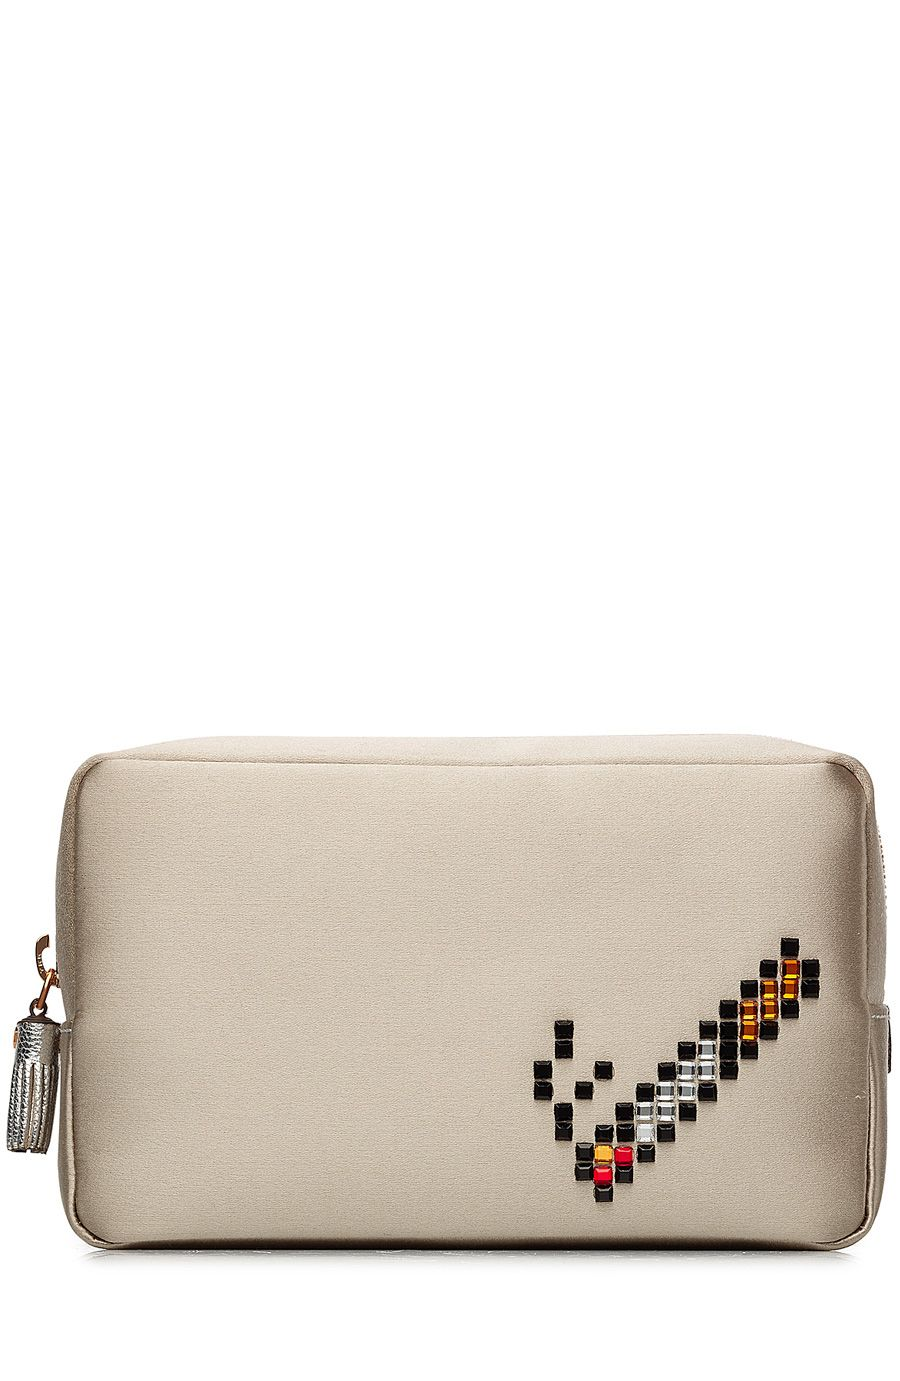 ANYA HINDMARCH Cigarette Makeup Pouch. #anyahindmarch #bags #leather #pouch #accessories #